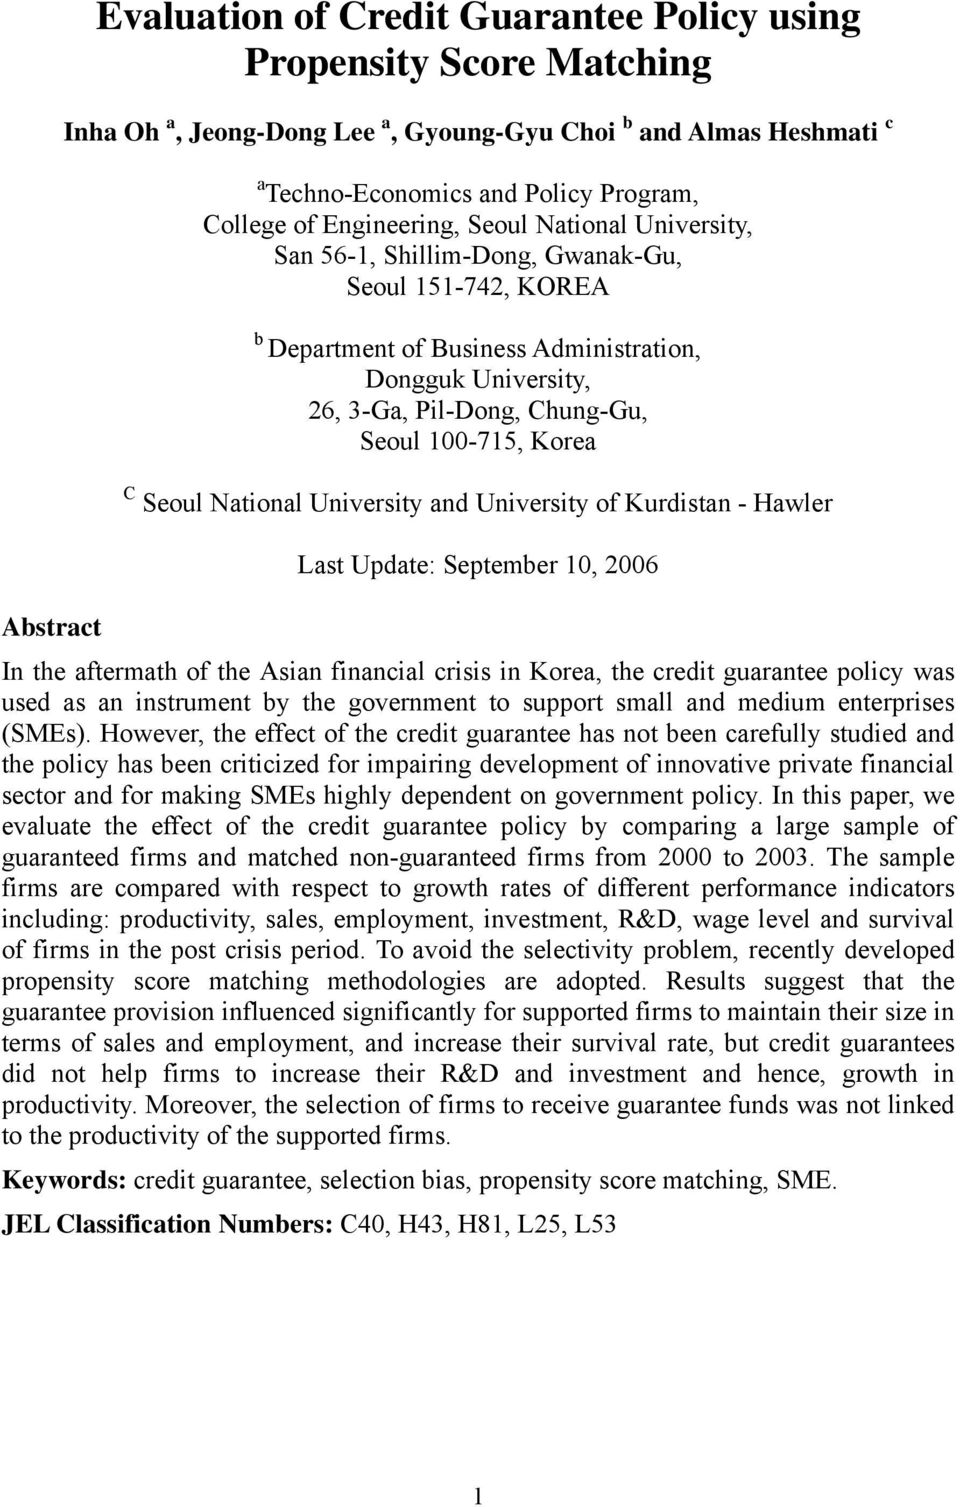 100-715, Korea C Seoul National University and University of Kurdistan - Hawler Last Update: September 10, 2006 Abstract In the aftermath of the Asian financial crisis in Korea, the credit guarantee